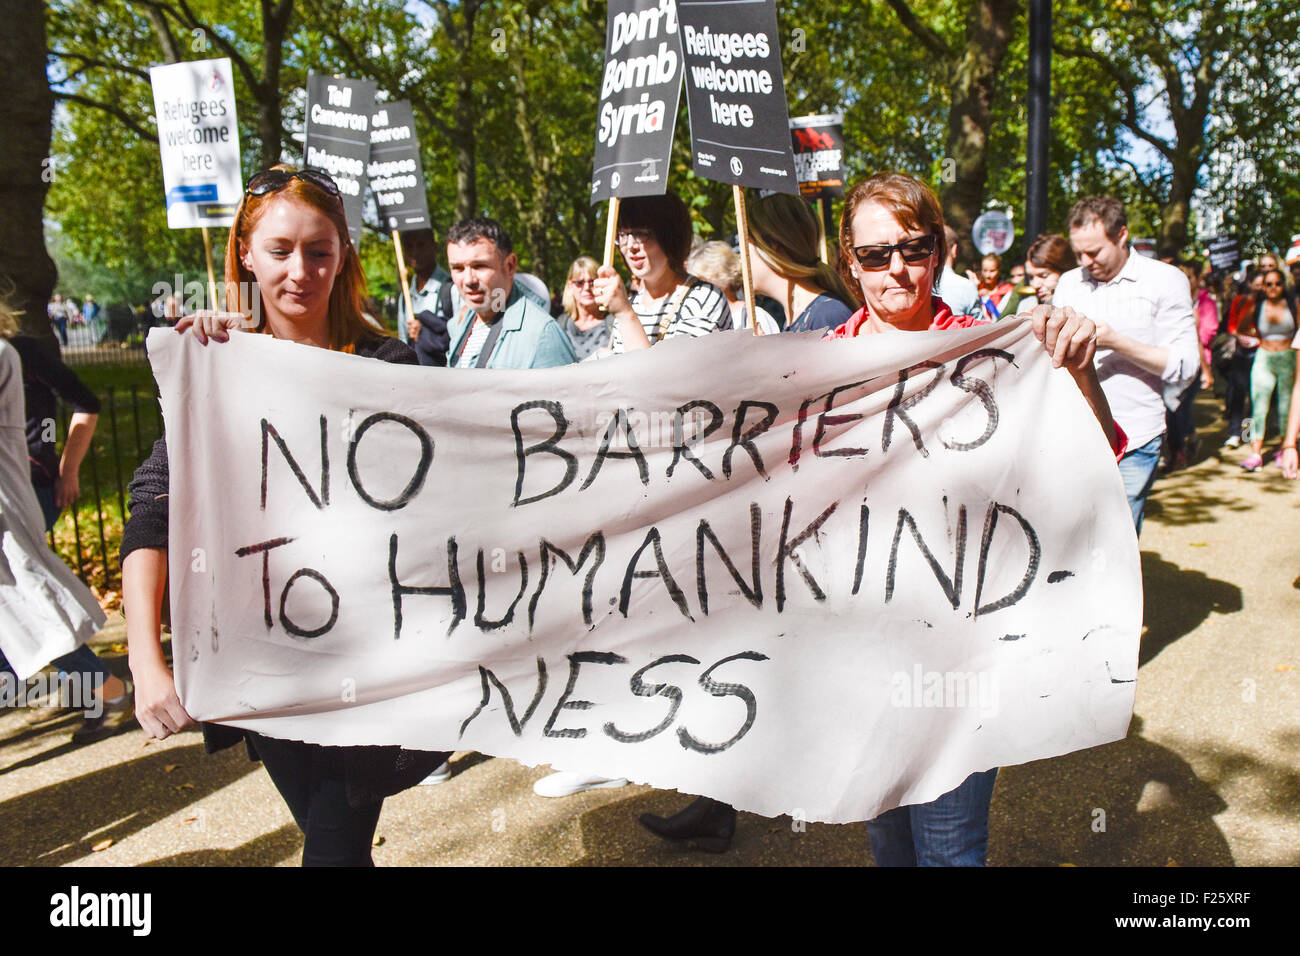 London, UK. 12th September 2015. Colourful placards and banners held aloft by demonstrators marching in support - Stock Image